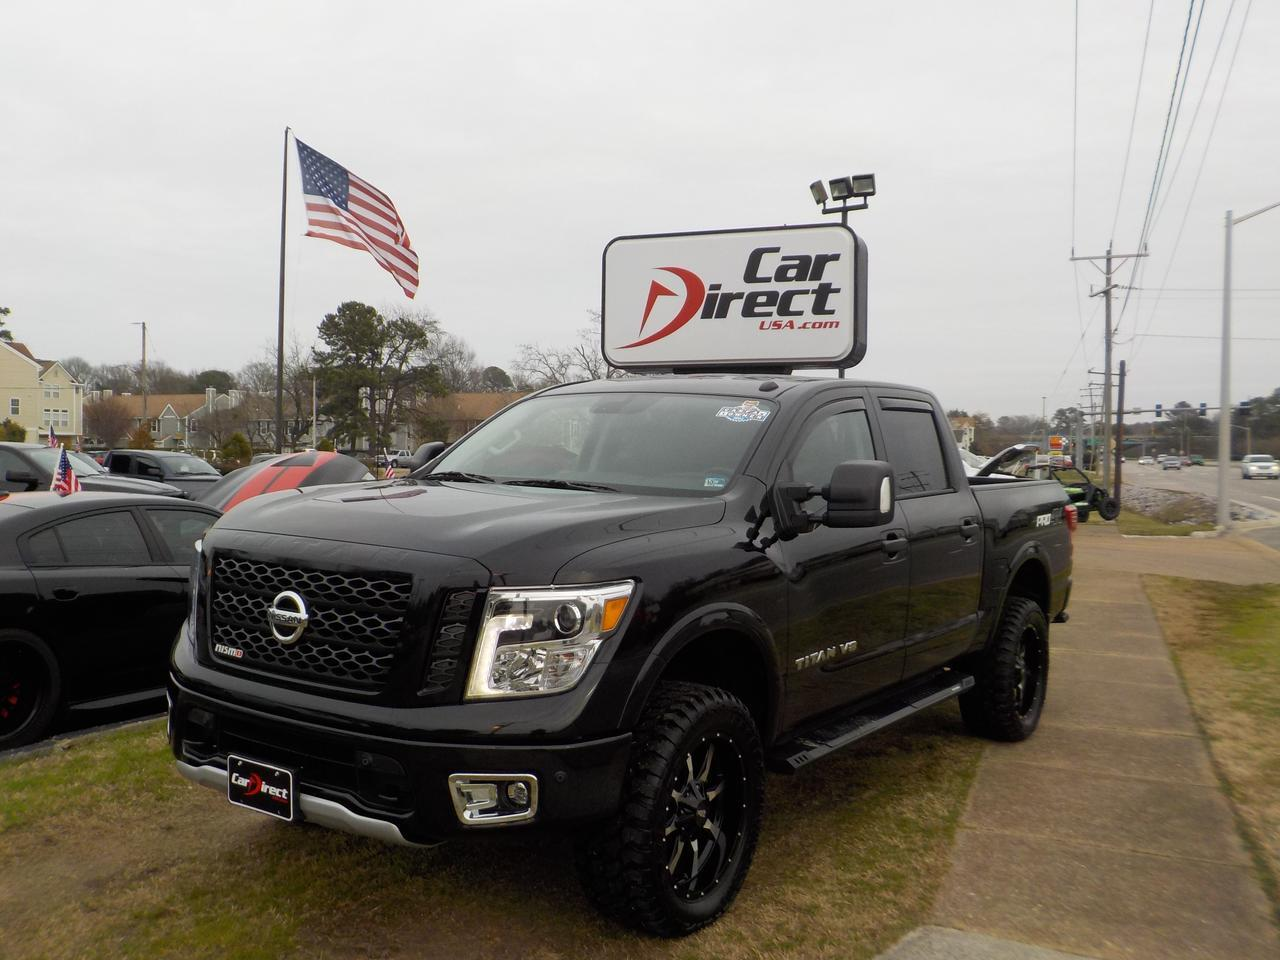 2018 NISSAN TITAN PRO-4X NISMO CREW CAB 4X4, WARRANTY, NAVIGATION, HEATED LEATHER AND STEERING WHEEL, ALL OPTIONS, NEW Virginia Beach VA